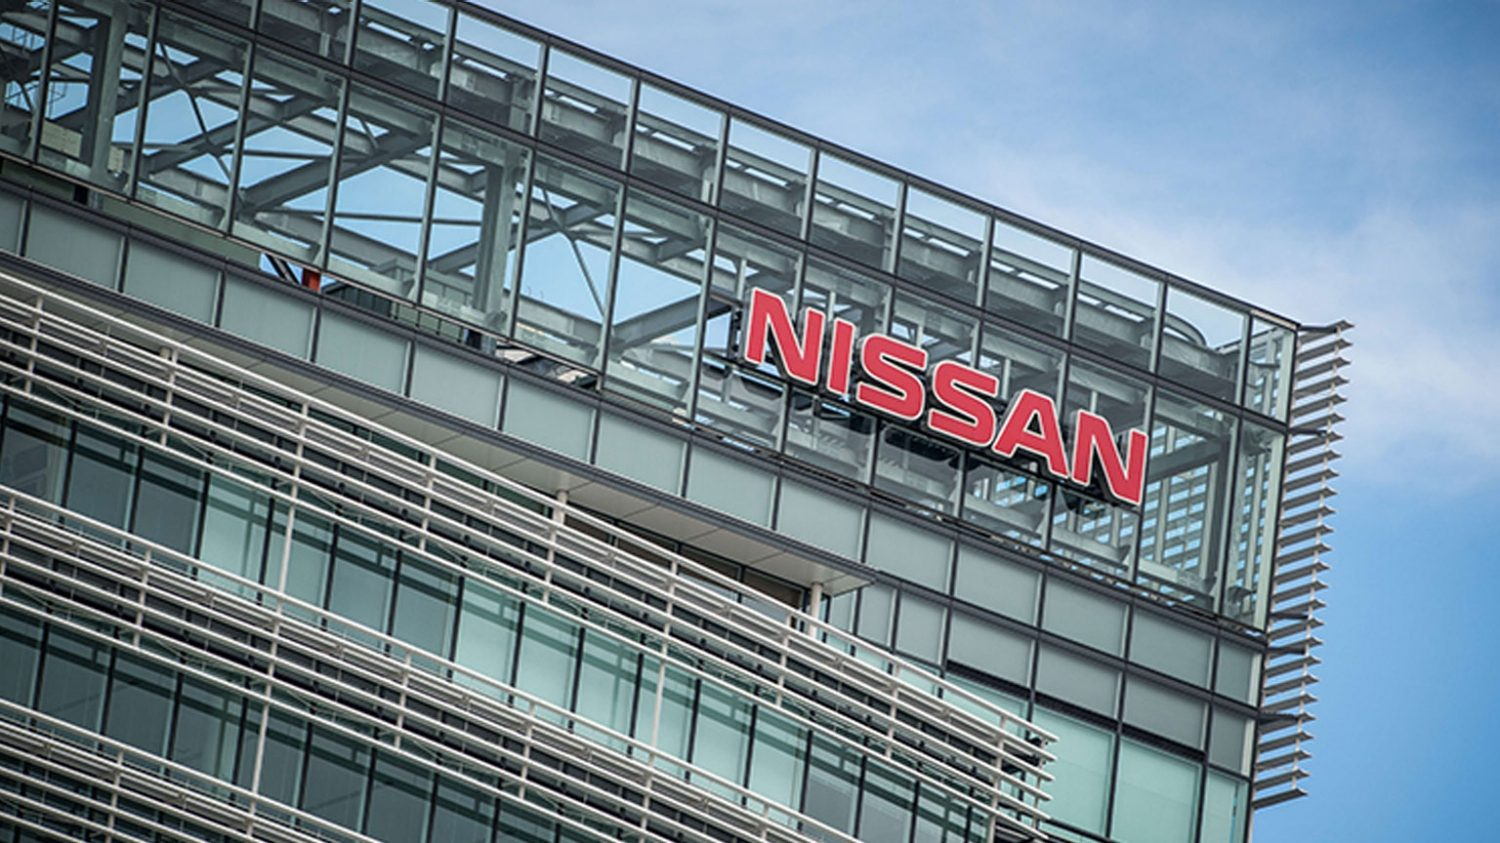 Nissan earns top rating among global businesses on water management